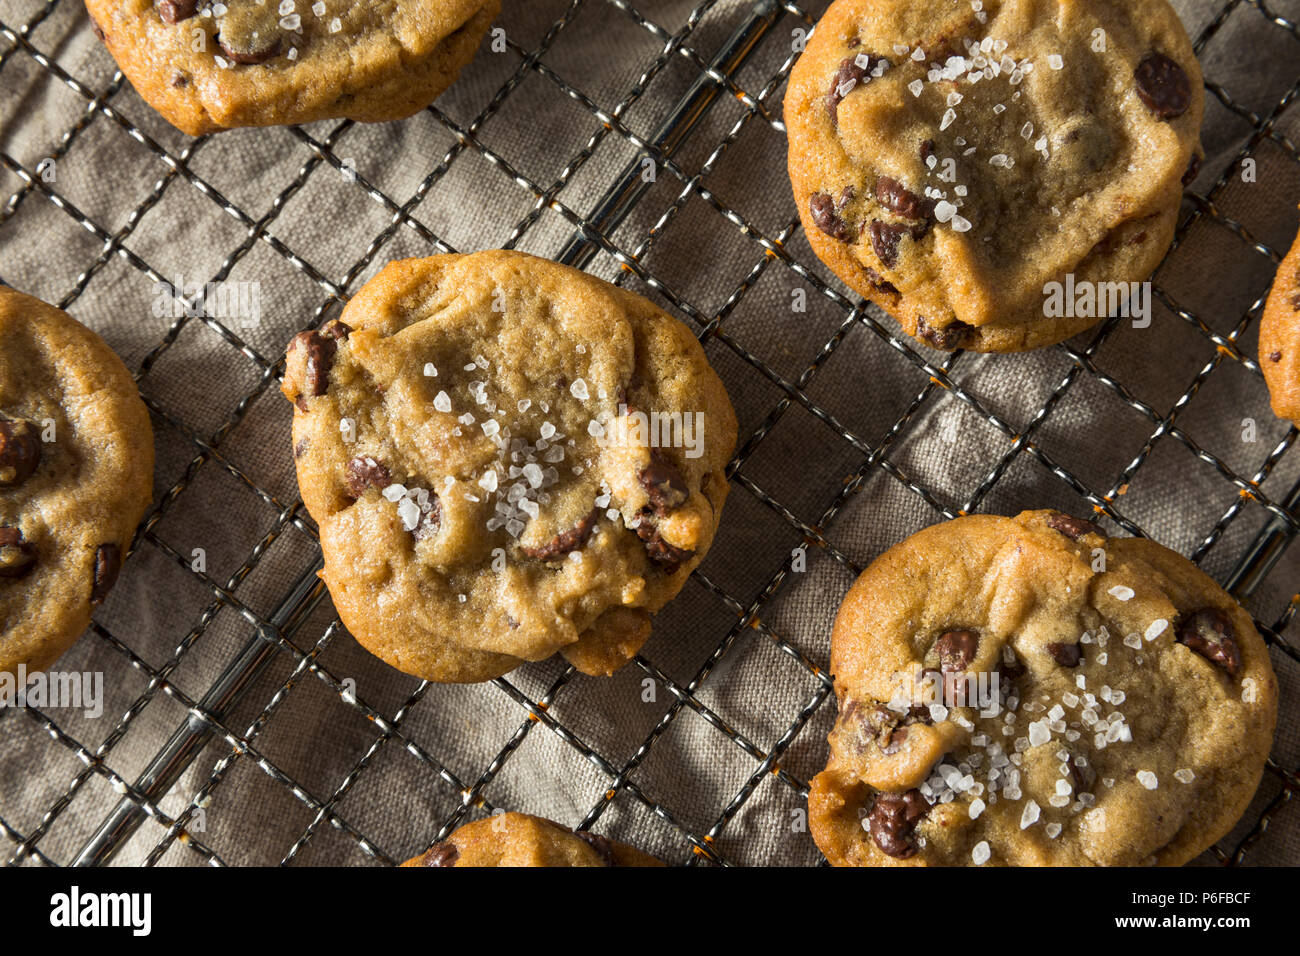 Homemade Sea Salt Chocolate Chip Cookies Ready to Eat - Stock Image